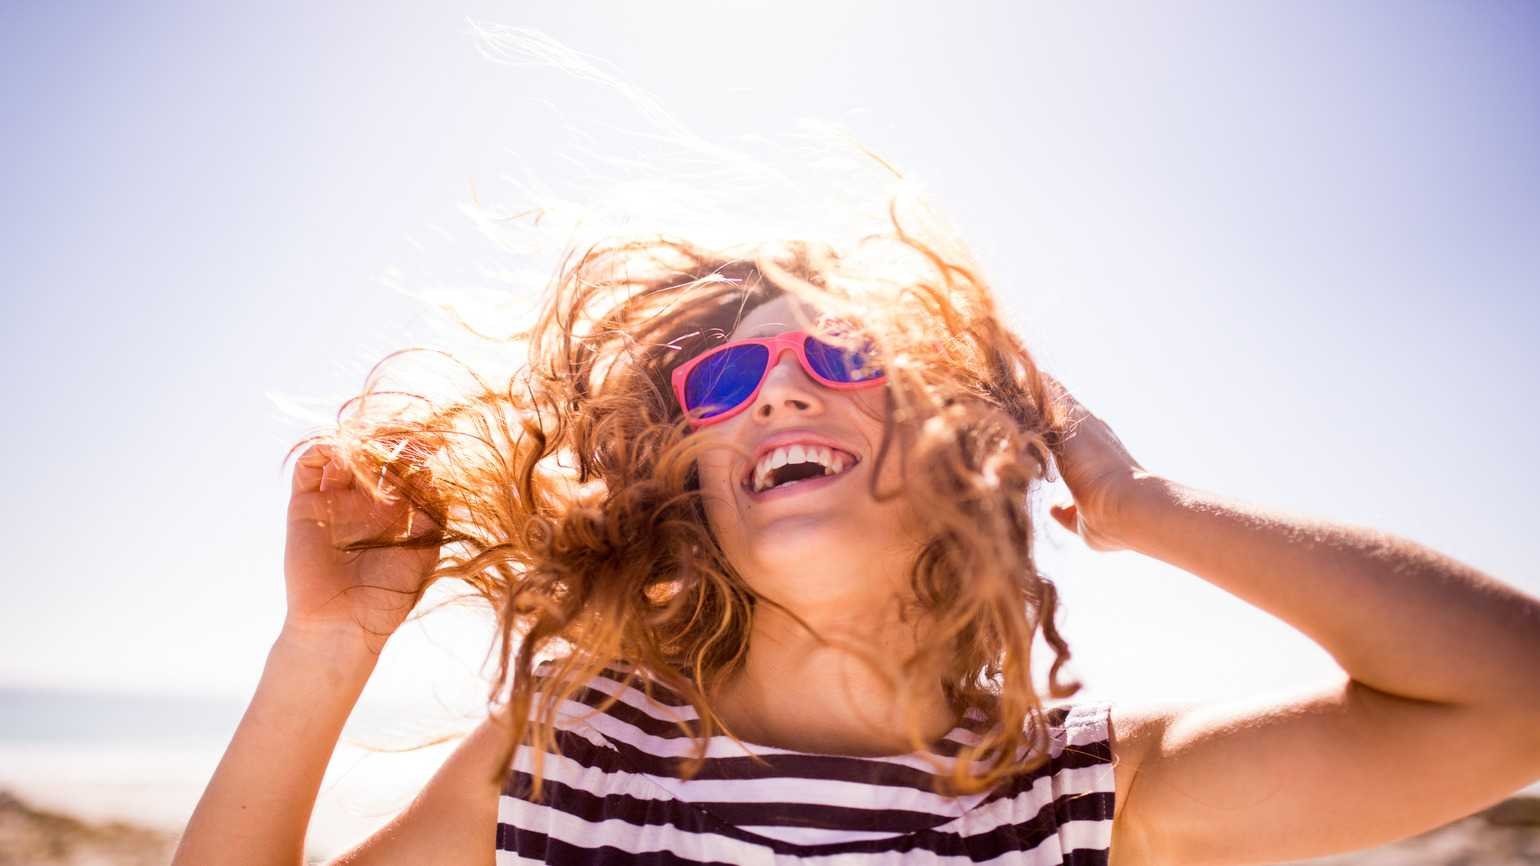 Cheerful laughing woman on the beach (Getty Images)